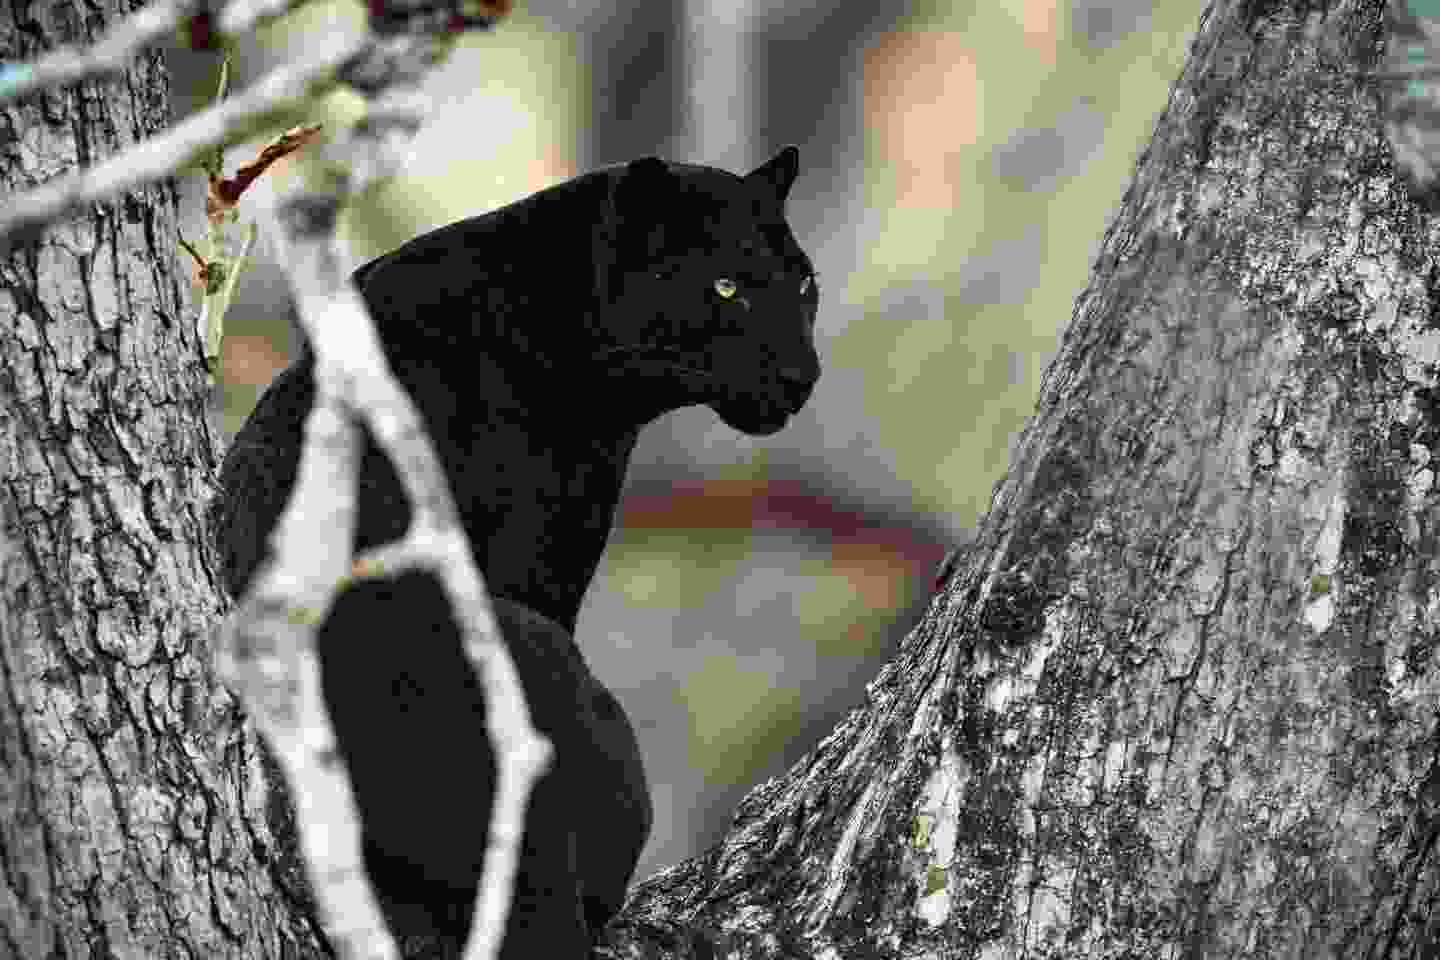 Black panther in the woods, South India (Shutterstock)